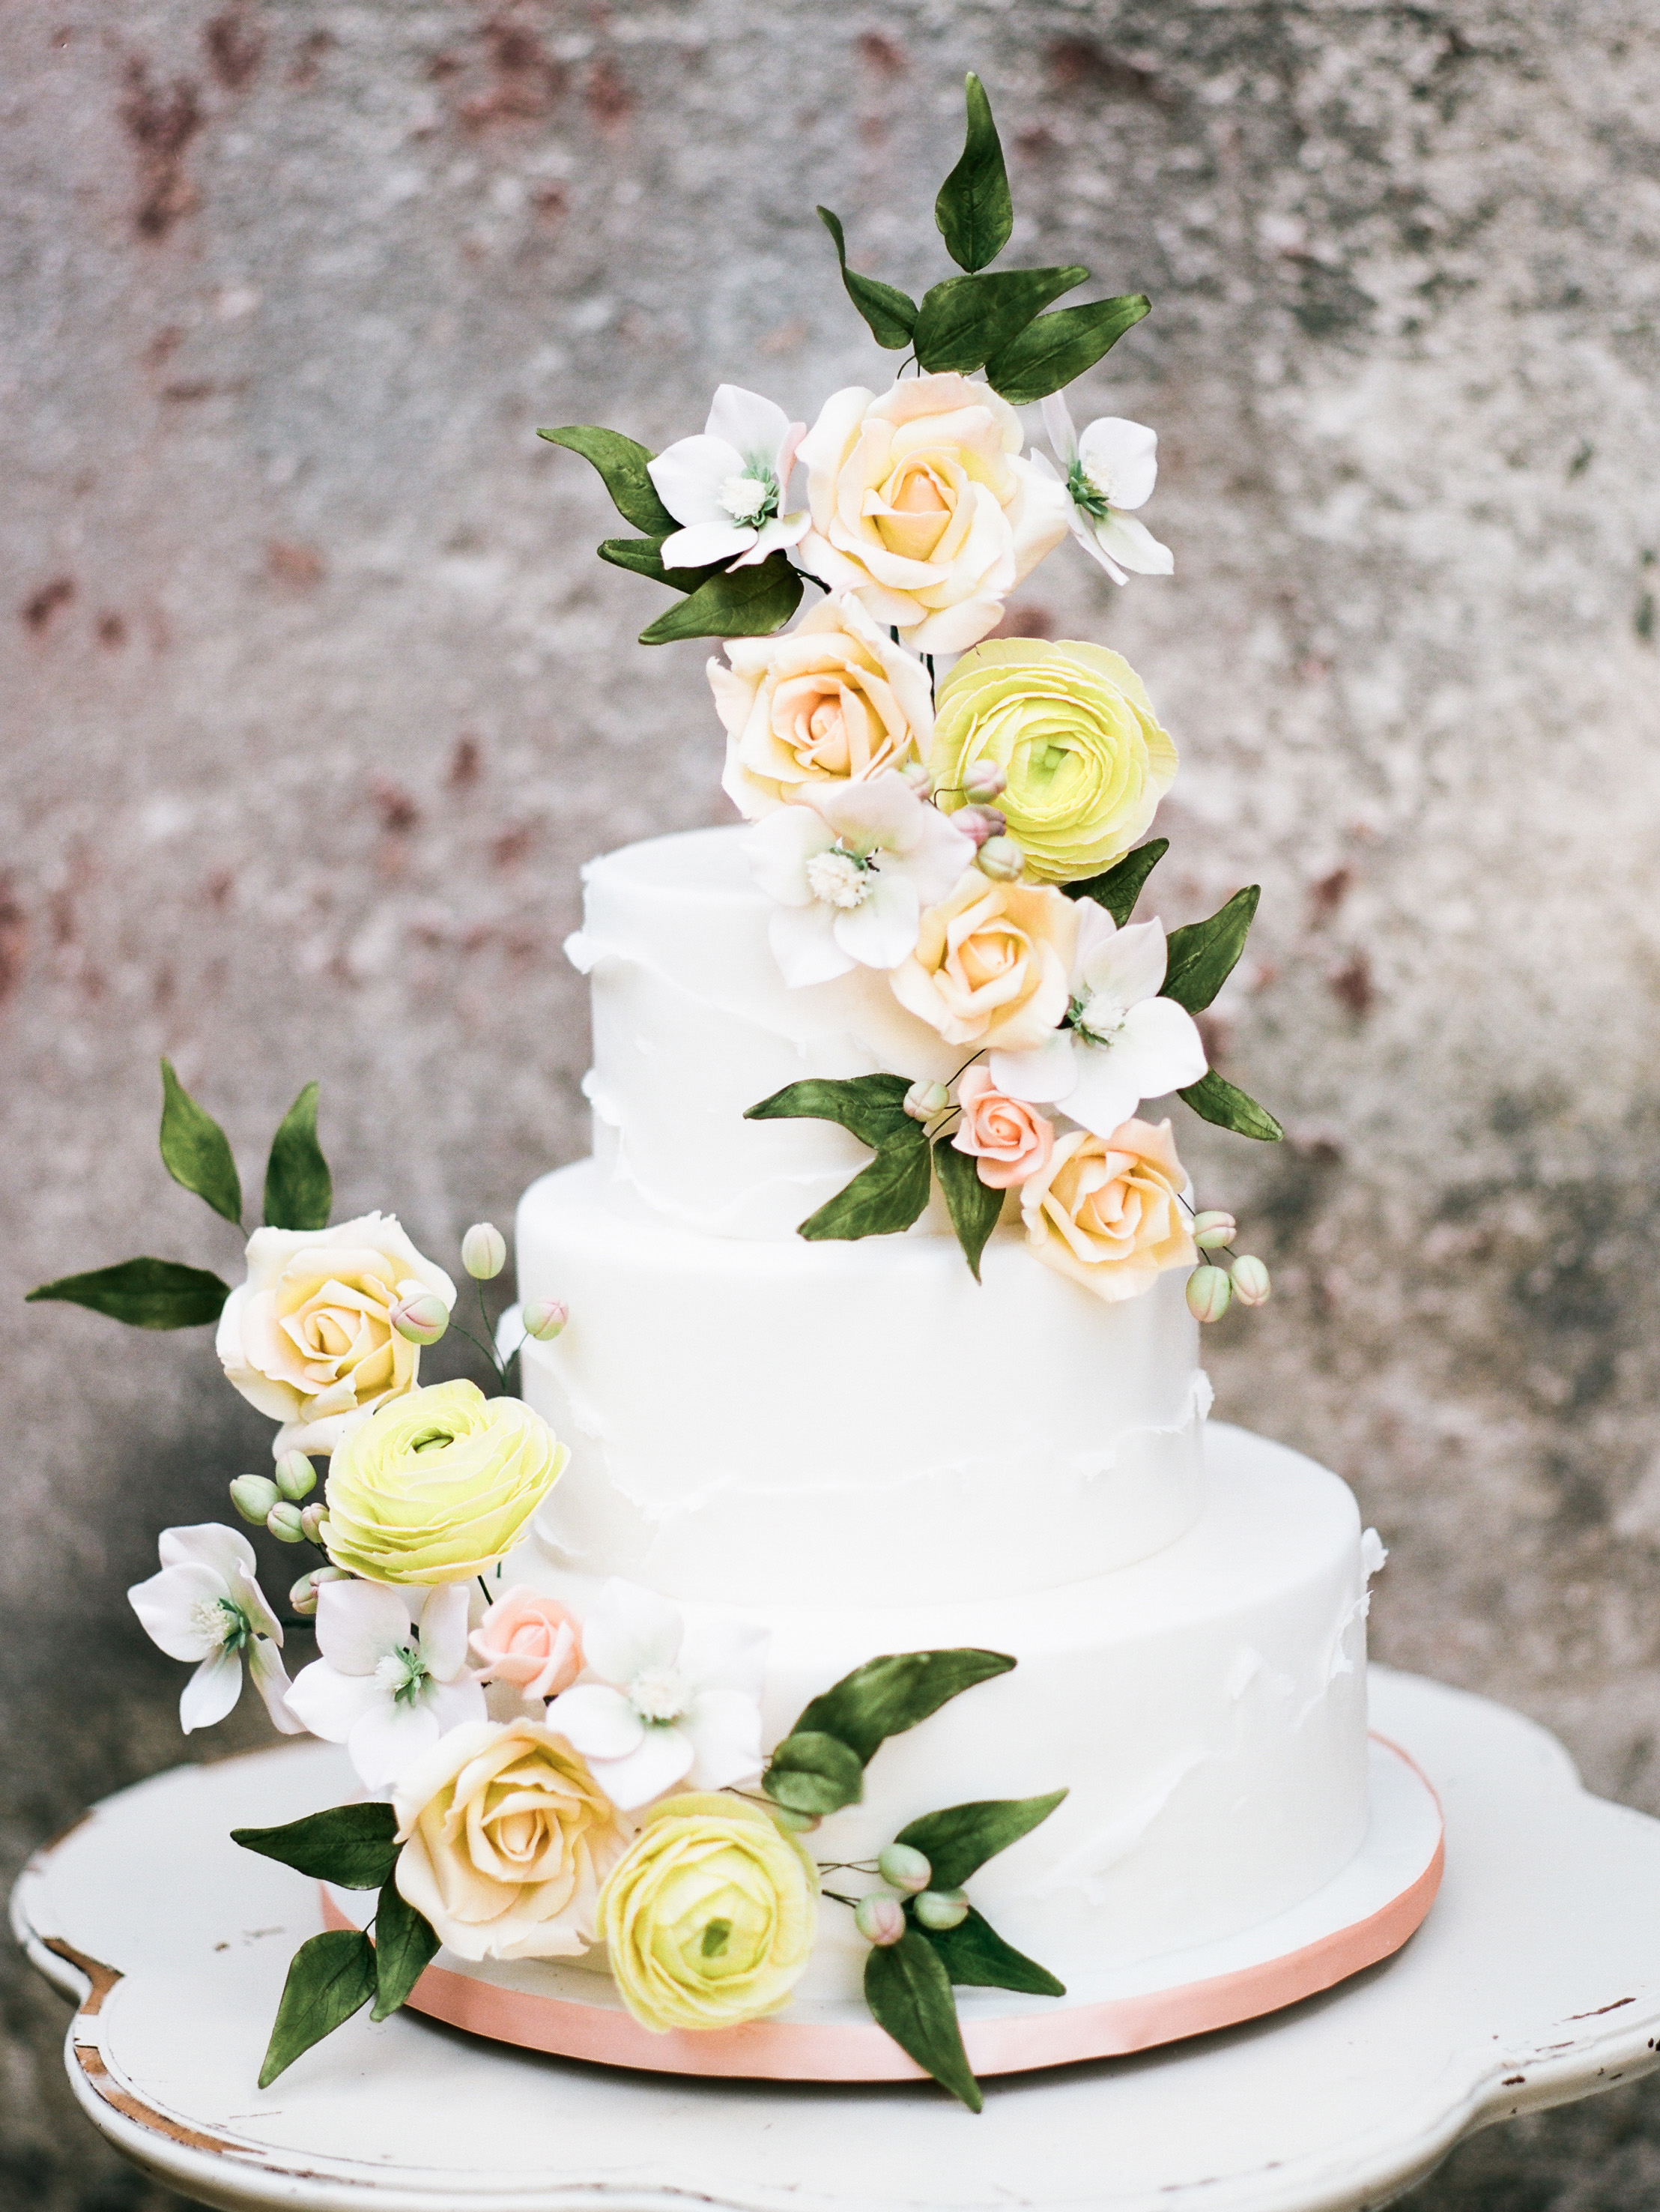 big cake with flowers